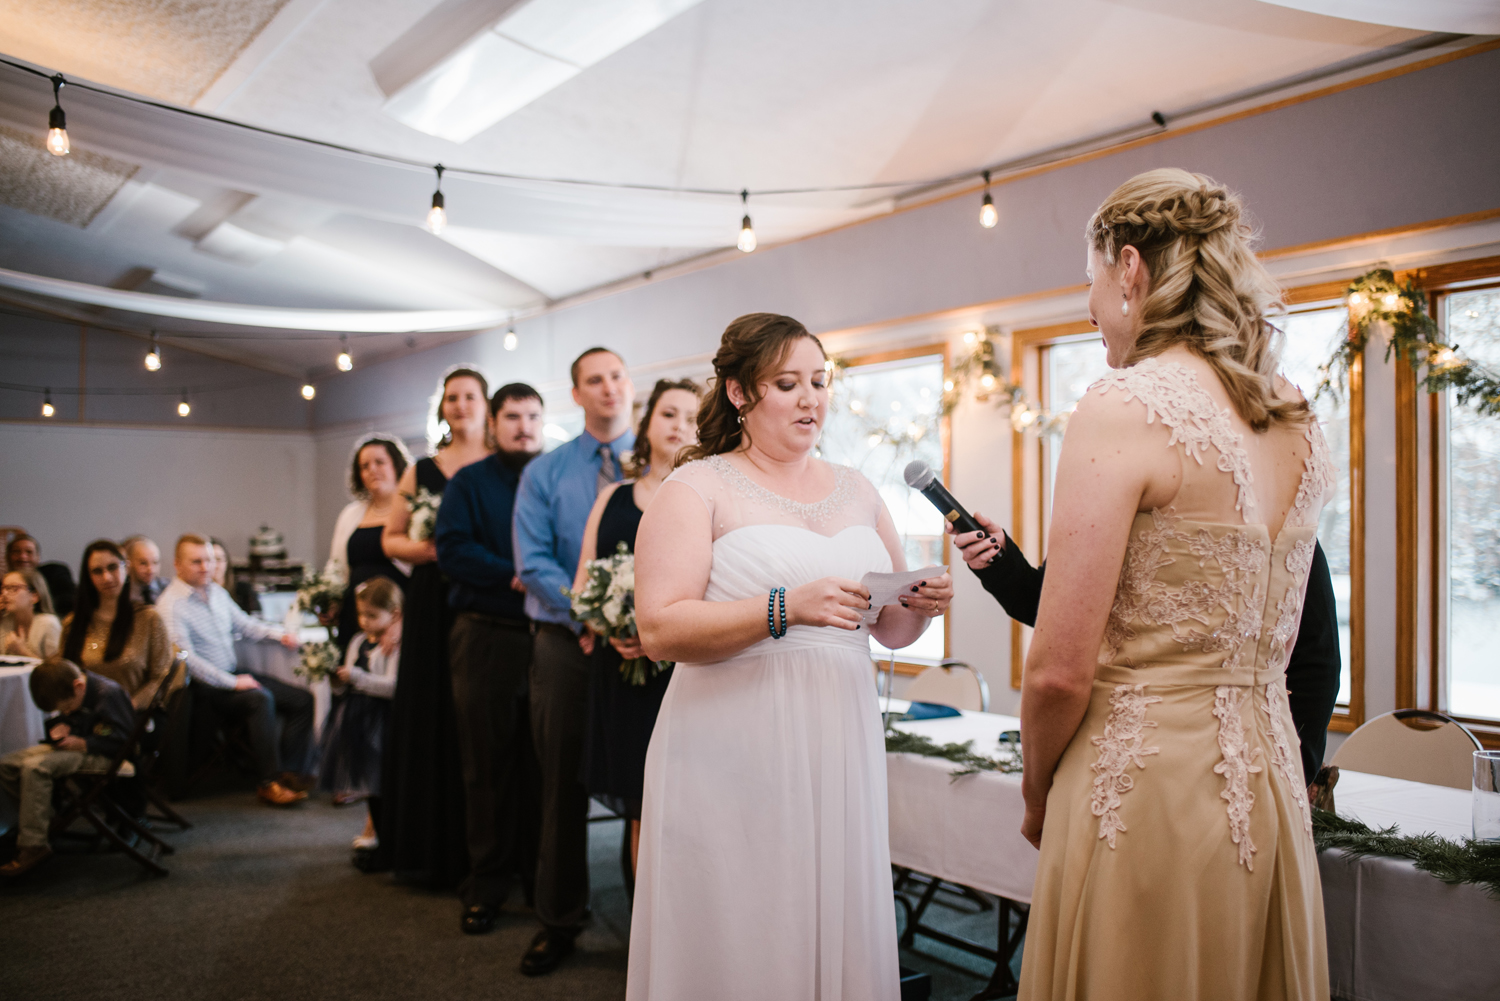 Bride giving vows during LGBT Wedding Ceremony